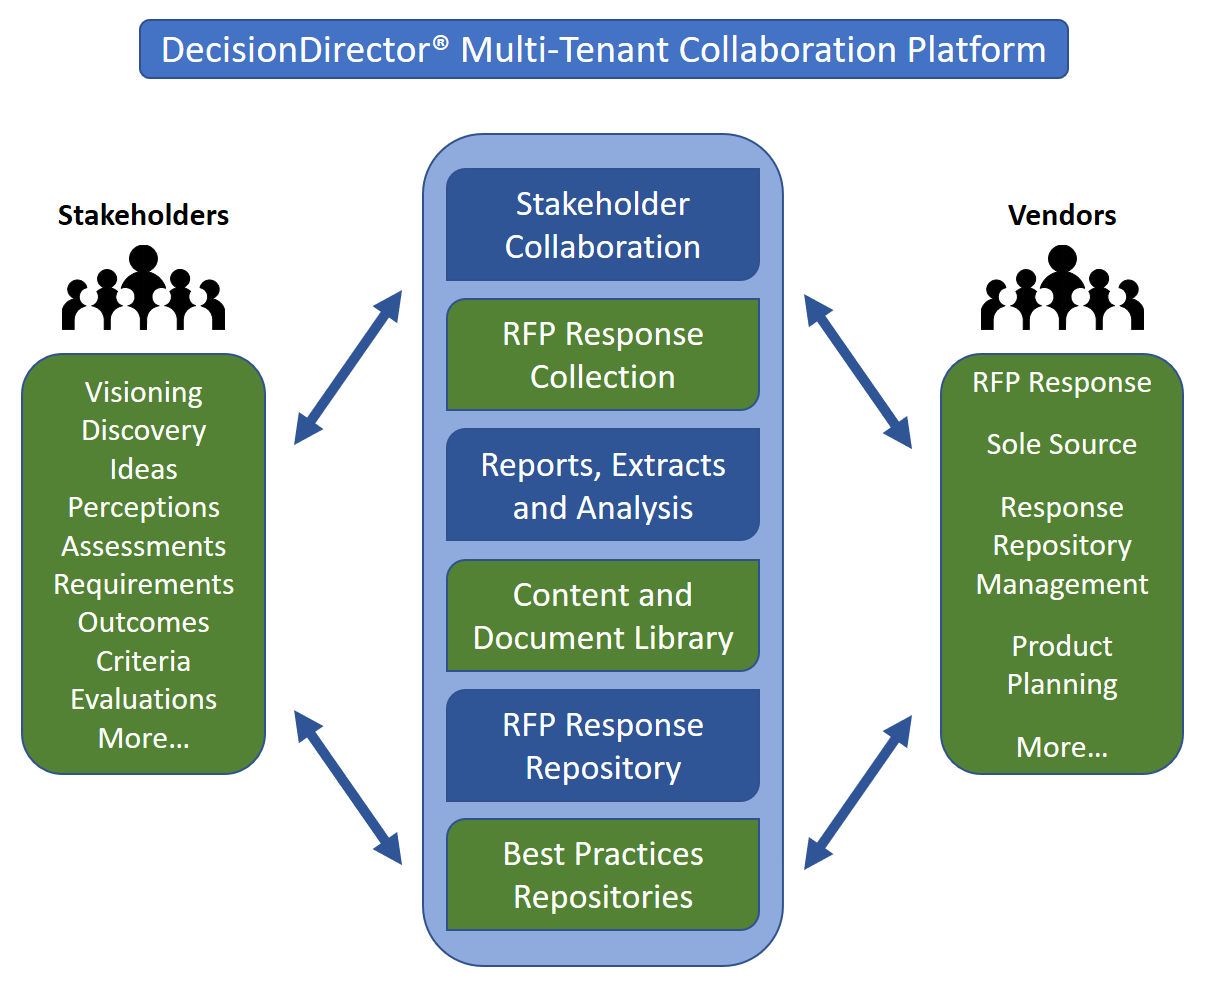 DecisionDirector supports the lifecycle of enterprise software selection for buyers and vendors